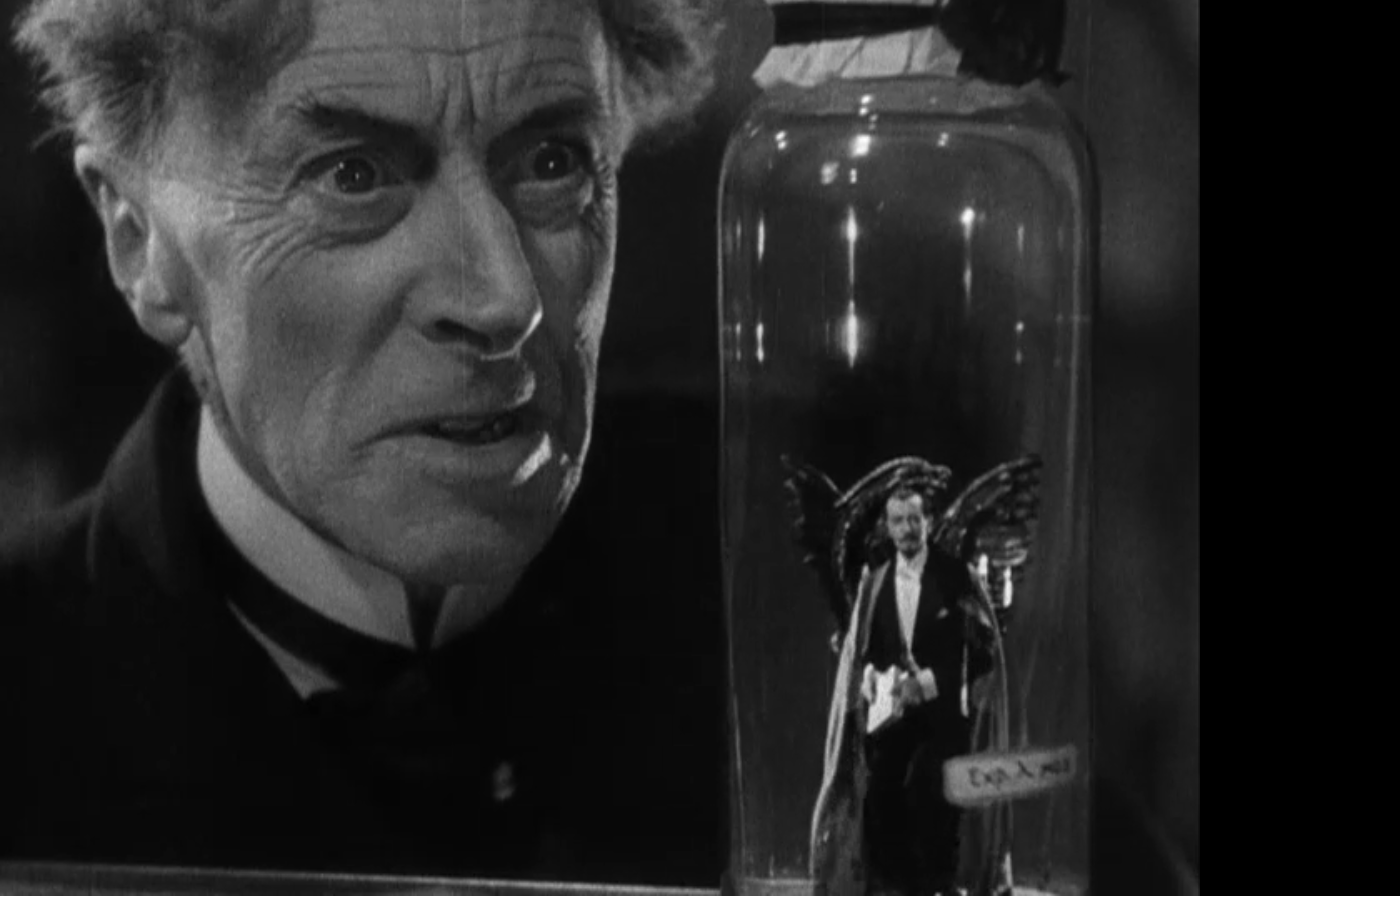 Dr. Pretorius and a homunculus in Bride of Frankenstein